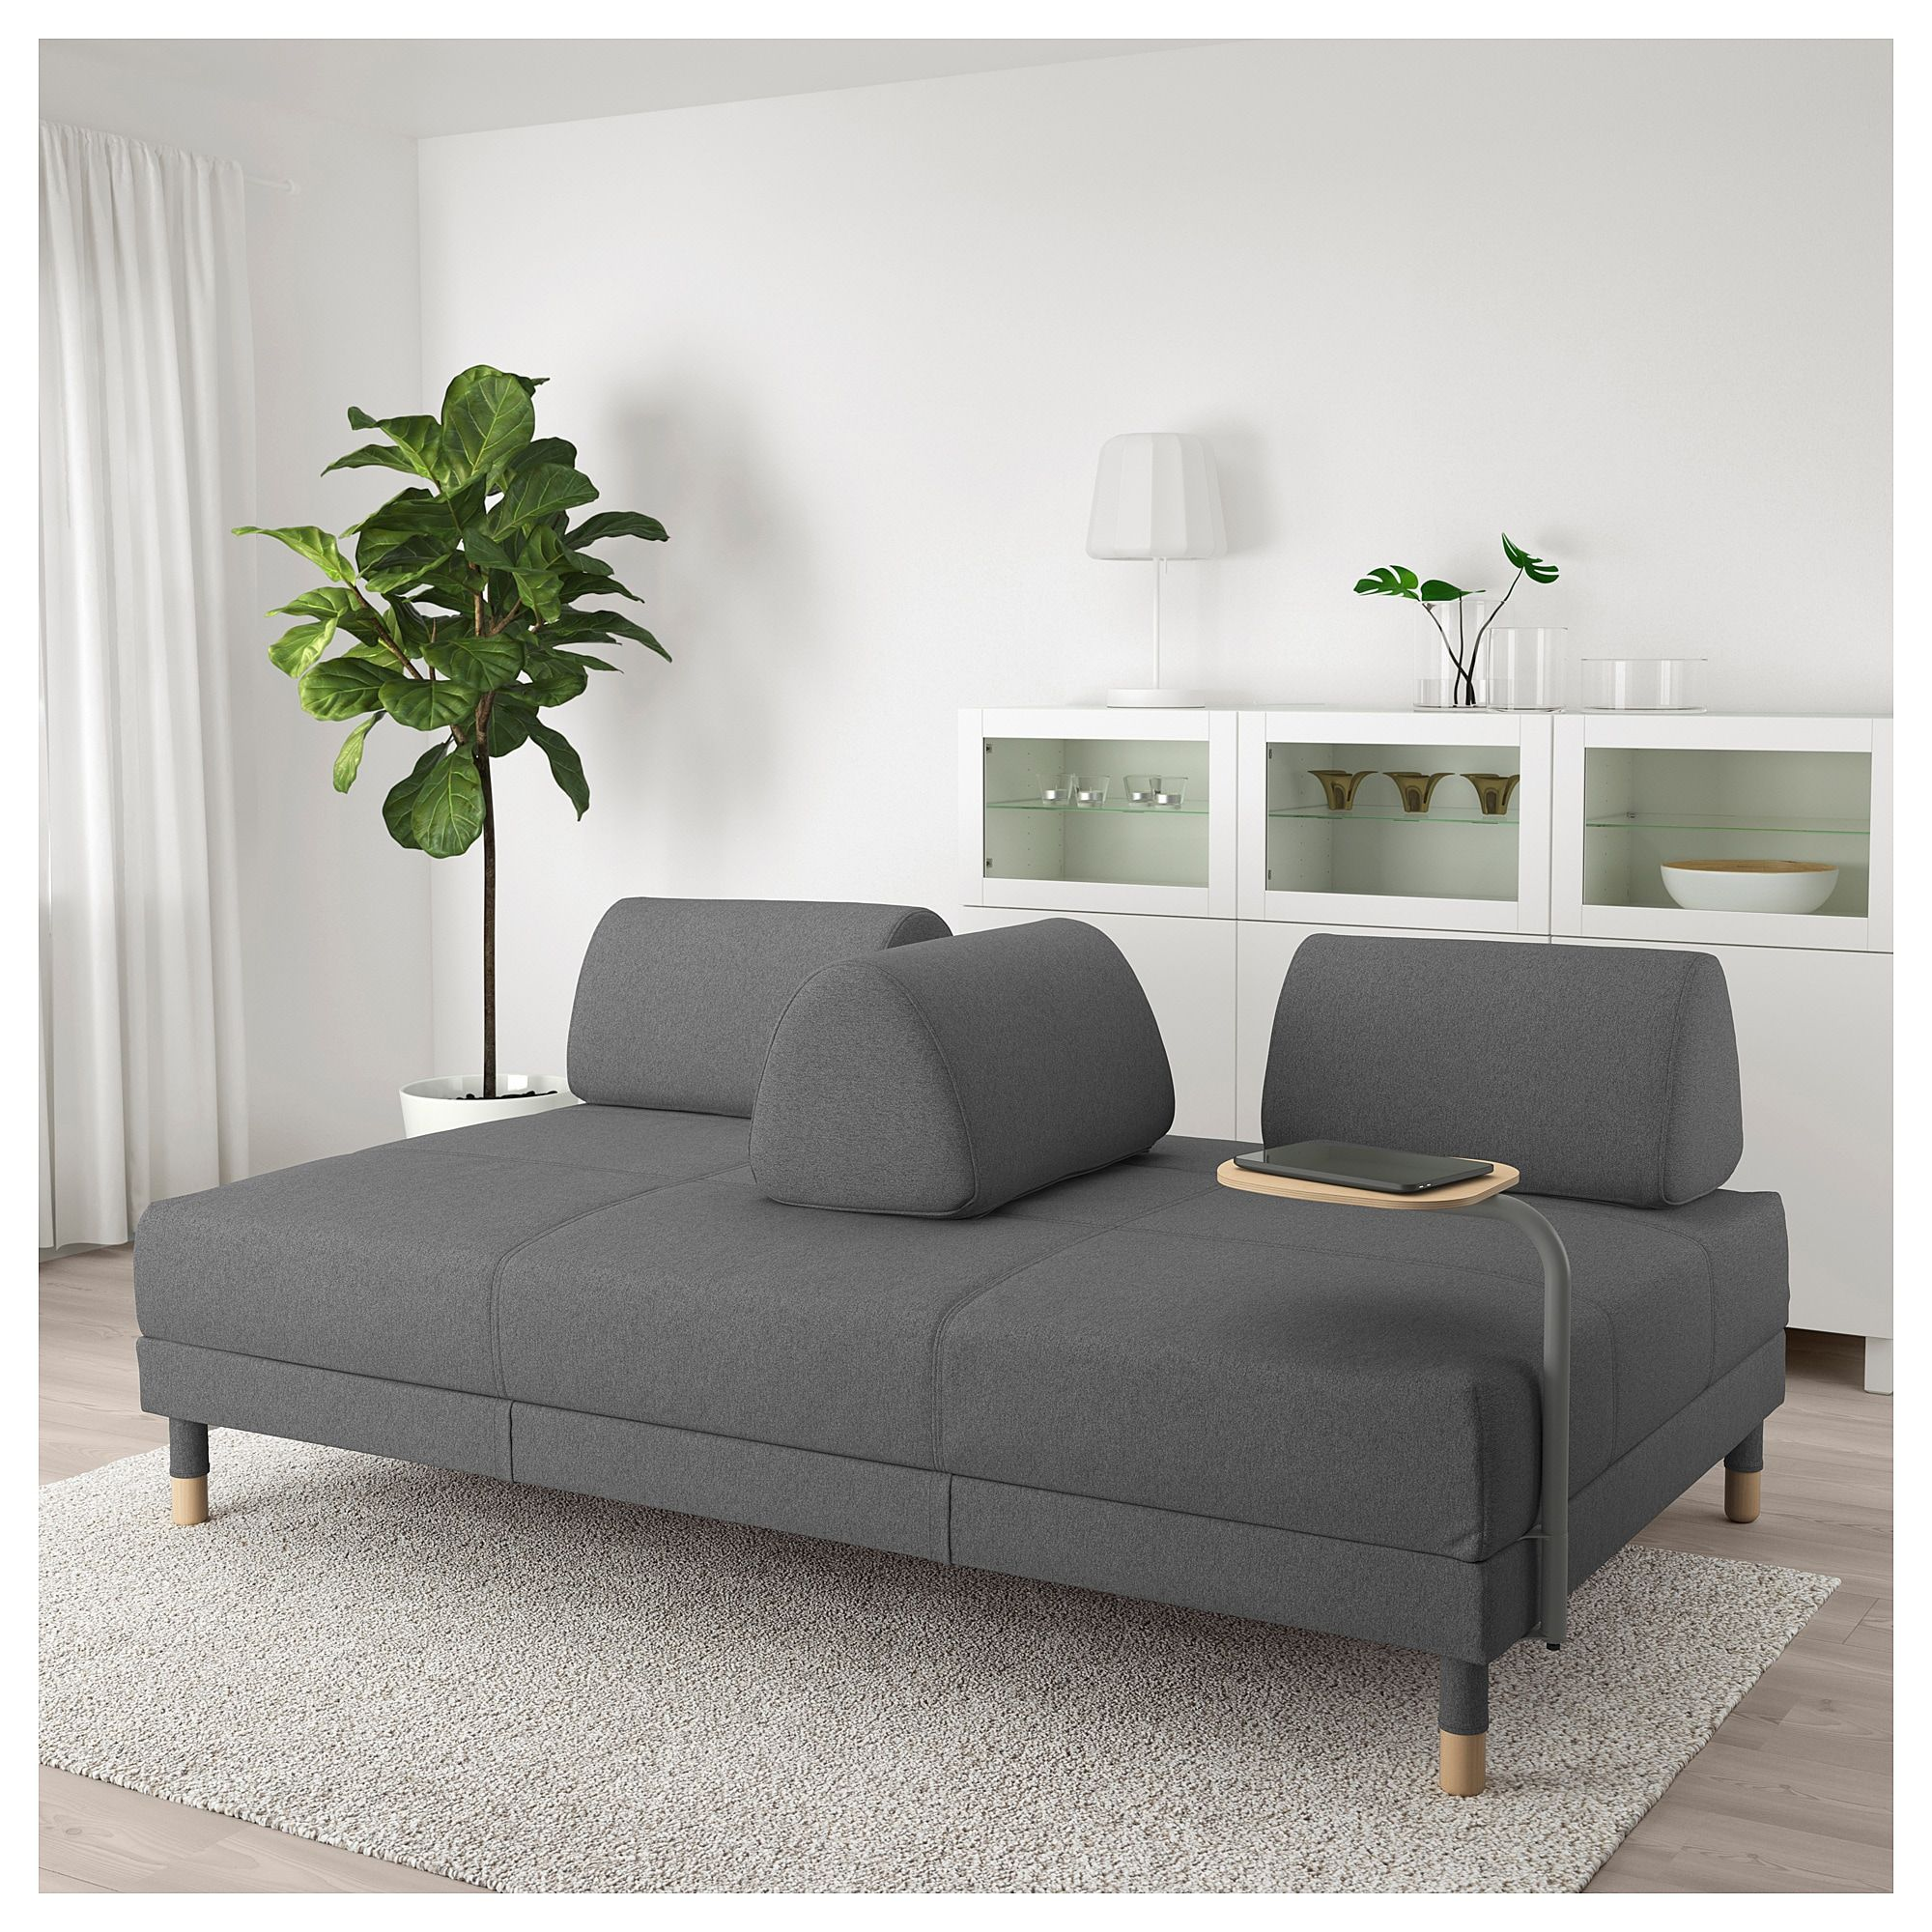 Us Furniture And Home Furnishings In 2019 Ikea Sofa Bed